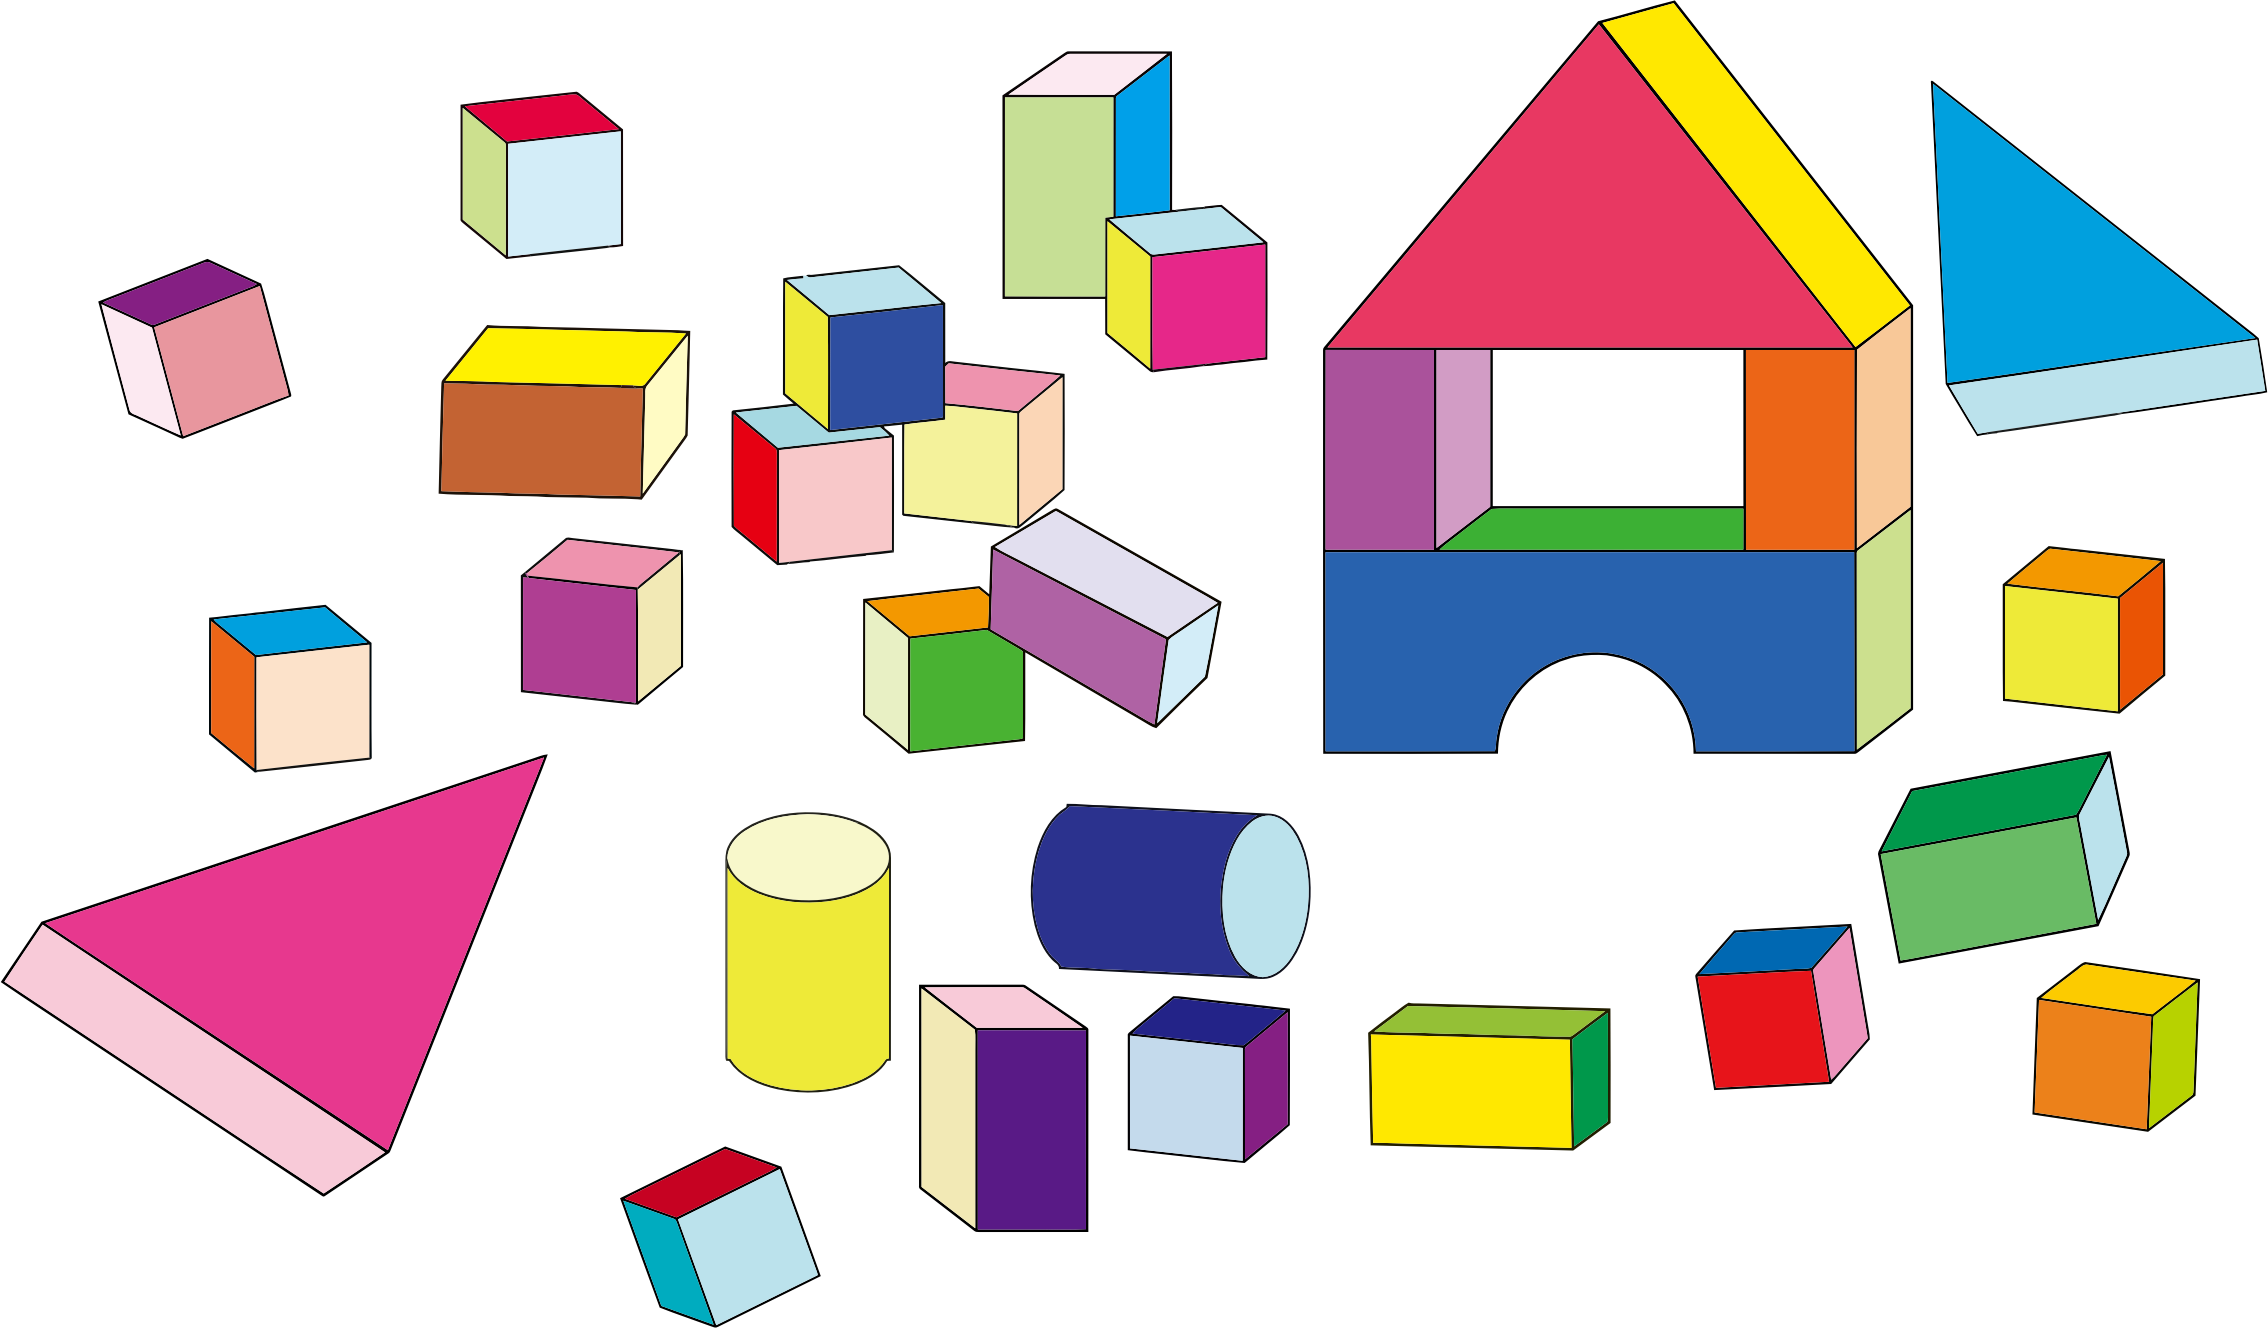 Building blocks pictures clip art image freeuse library Clipart - Building Block Toys image freeuse library